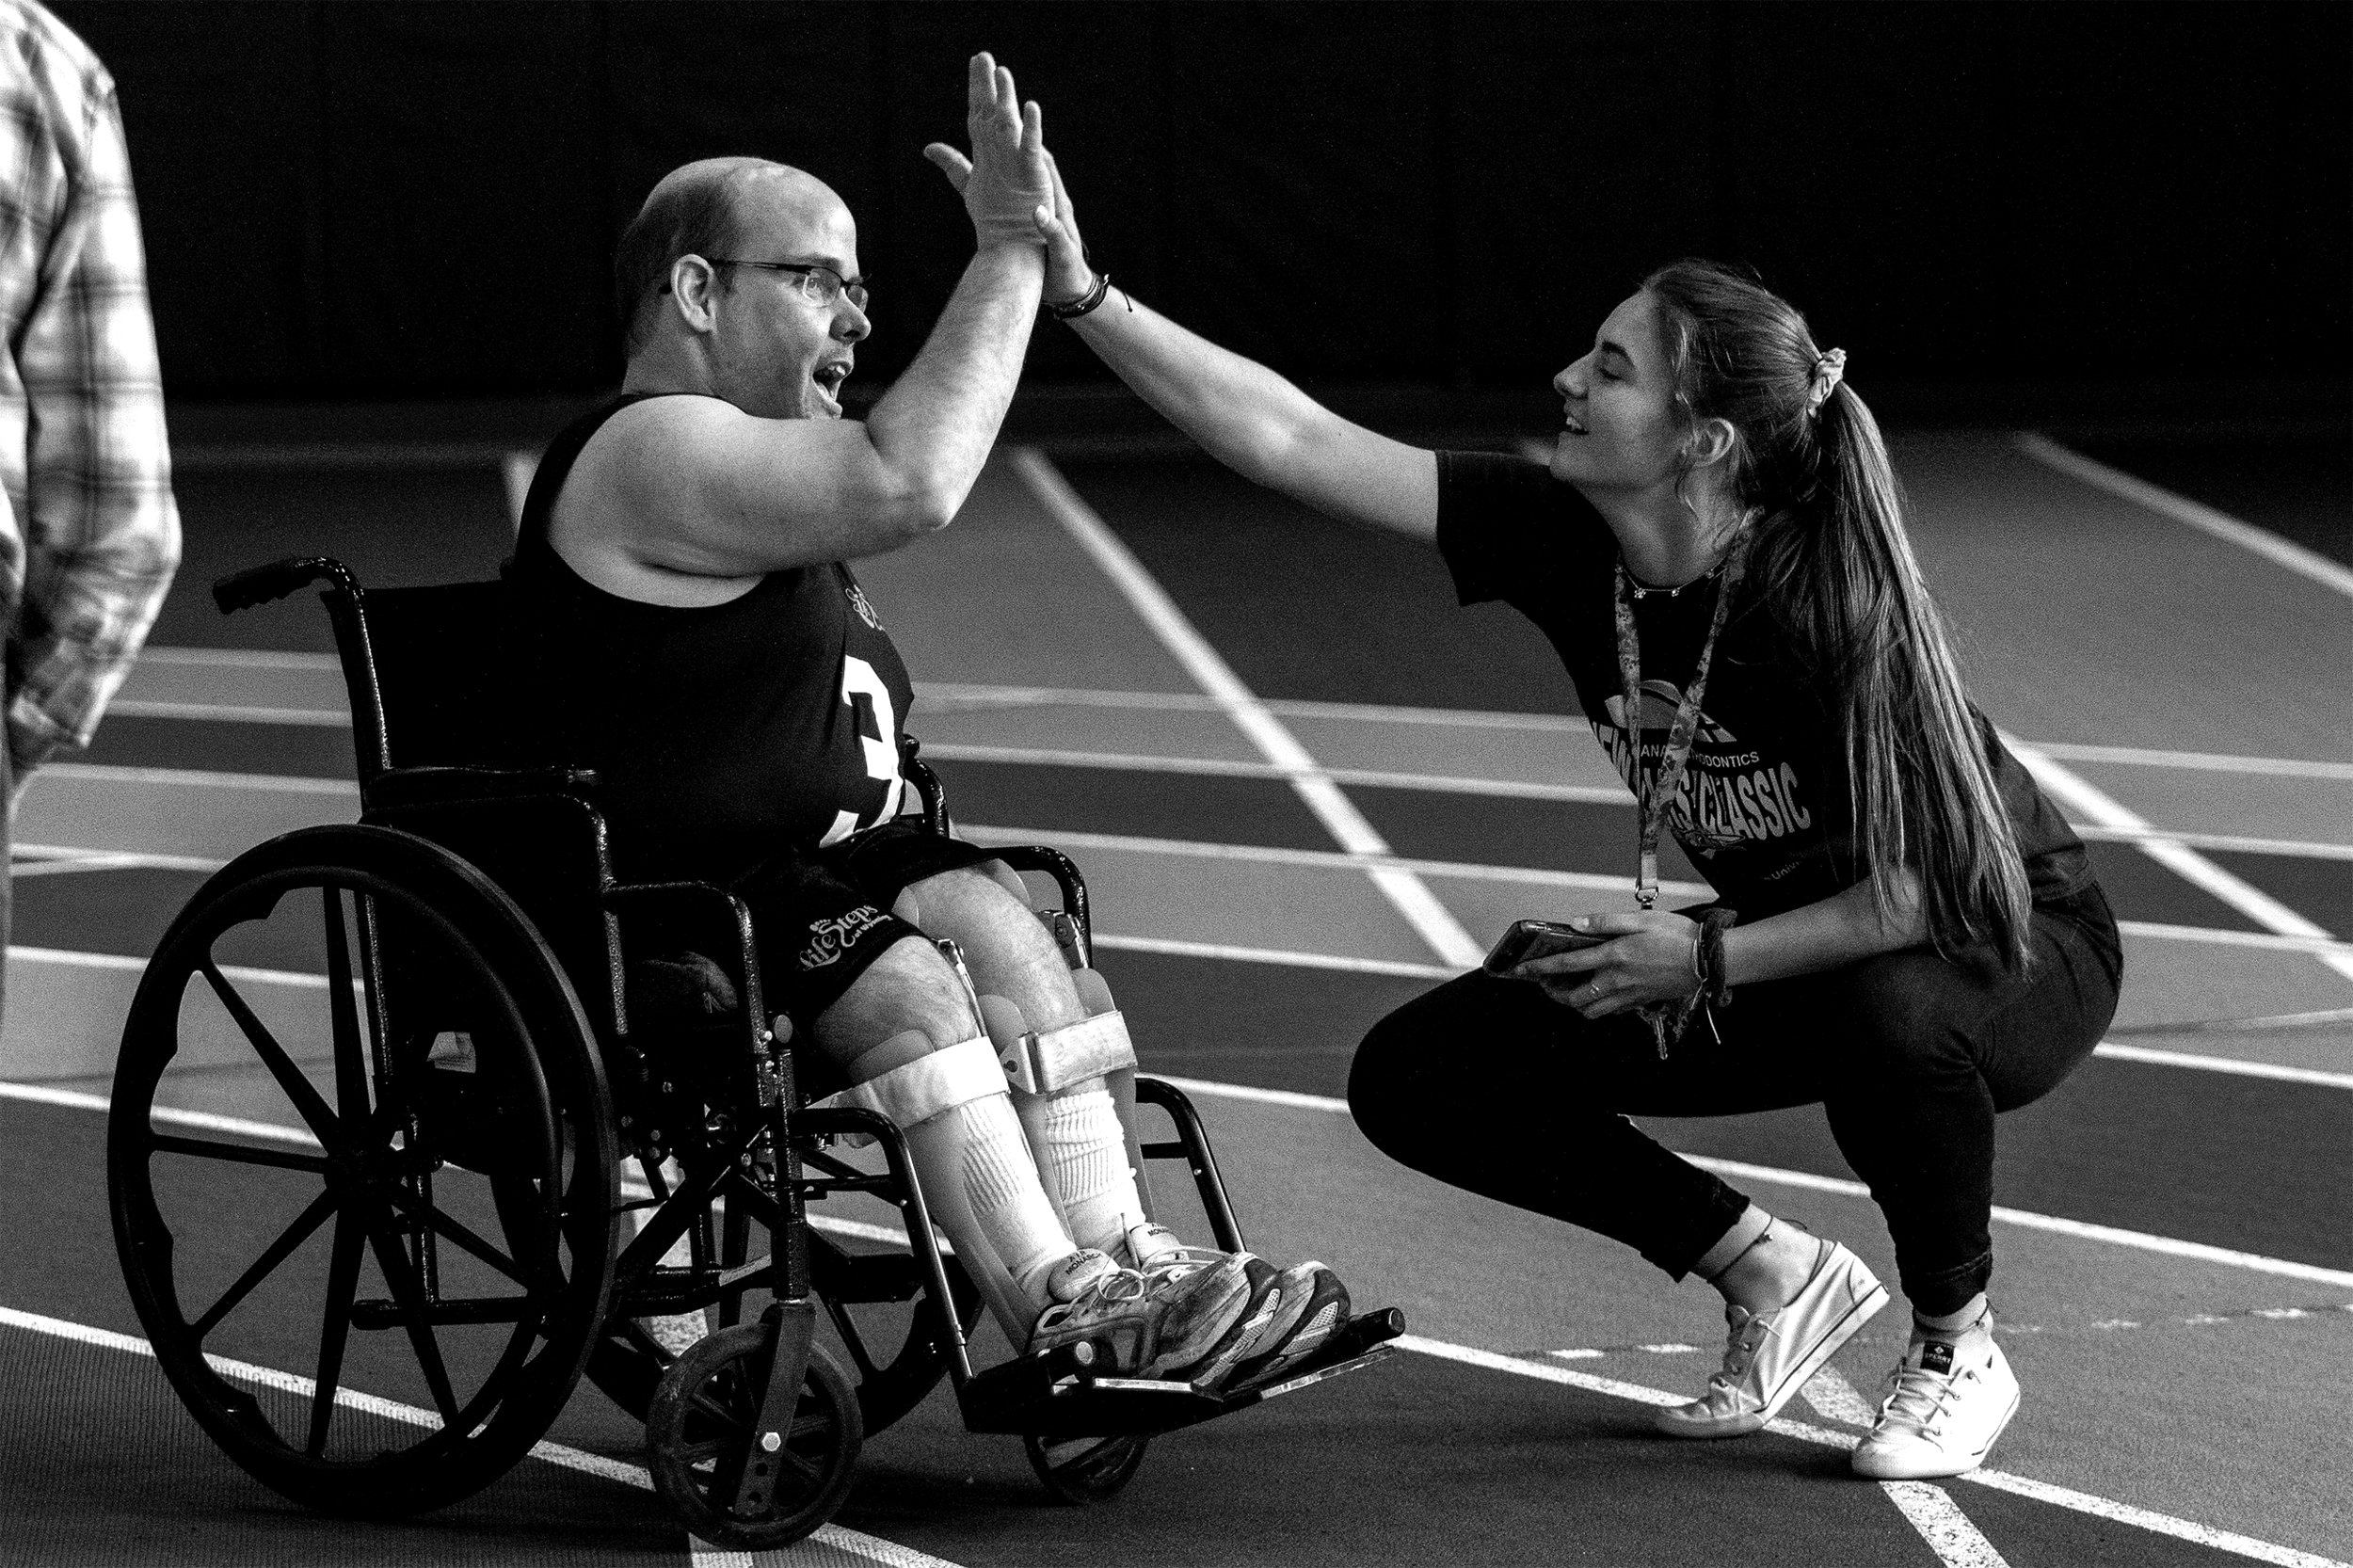 Jeff Mock receives a high five from his timekeeper Livia Castellanos after his race in wheelchair obstacle at the Rec Center on Friday, April 12, 2019. Mock was also one of two athletes to compete in weightlifting.